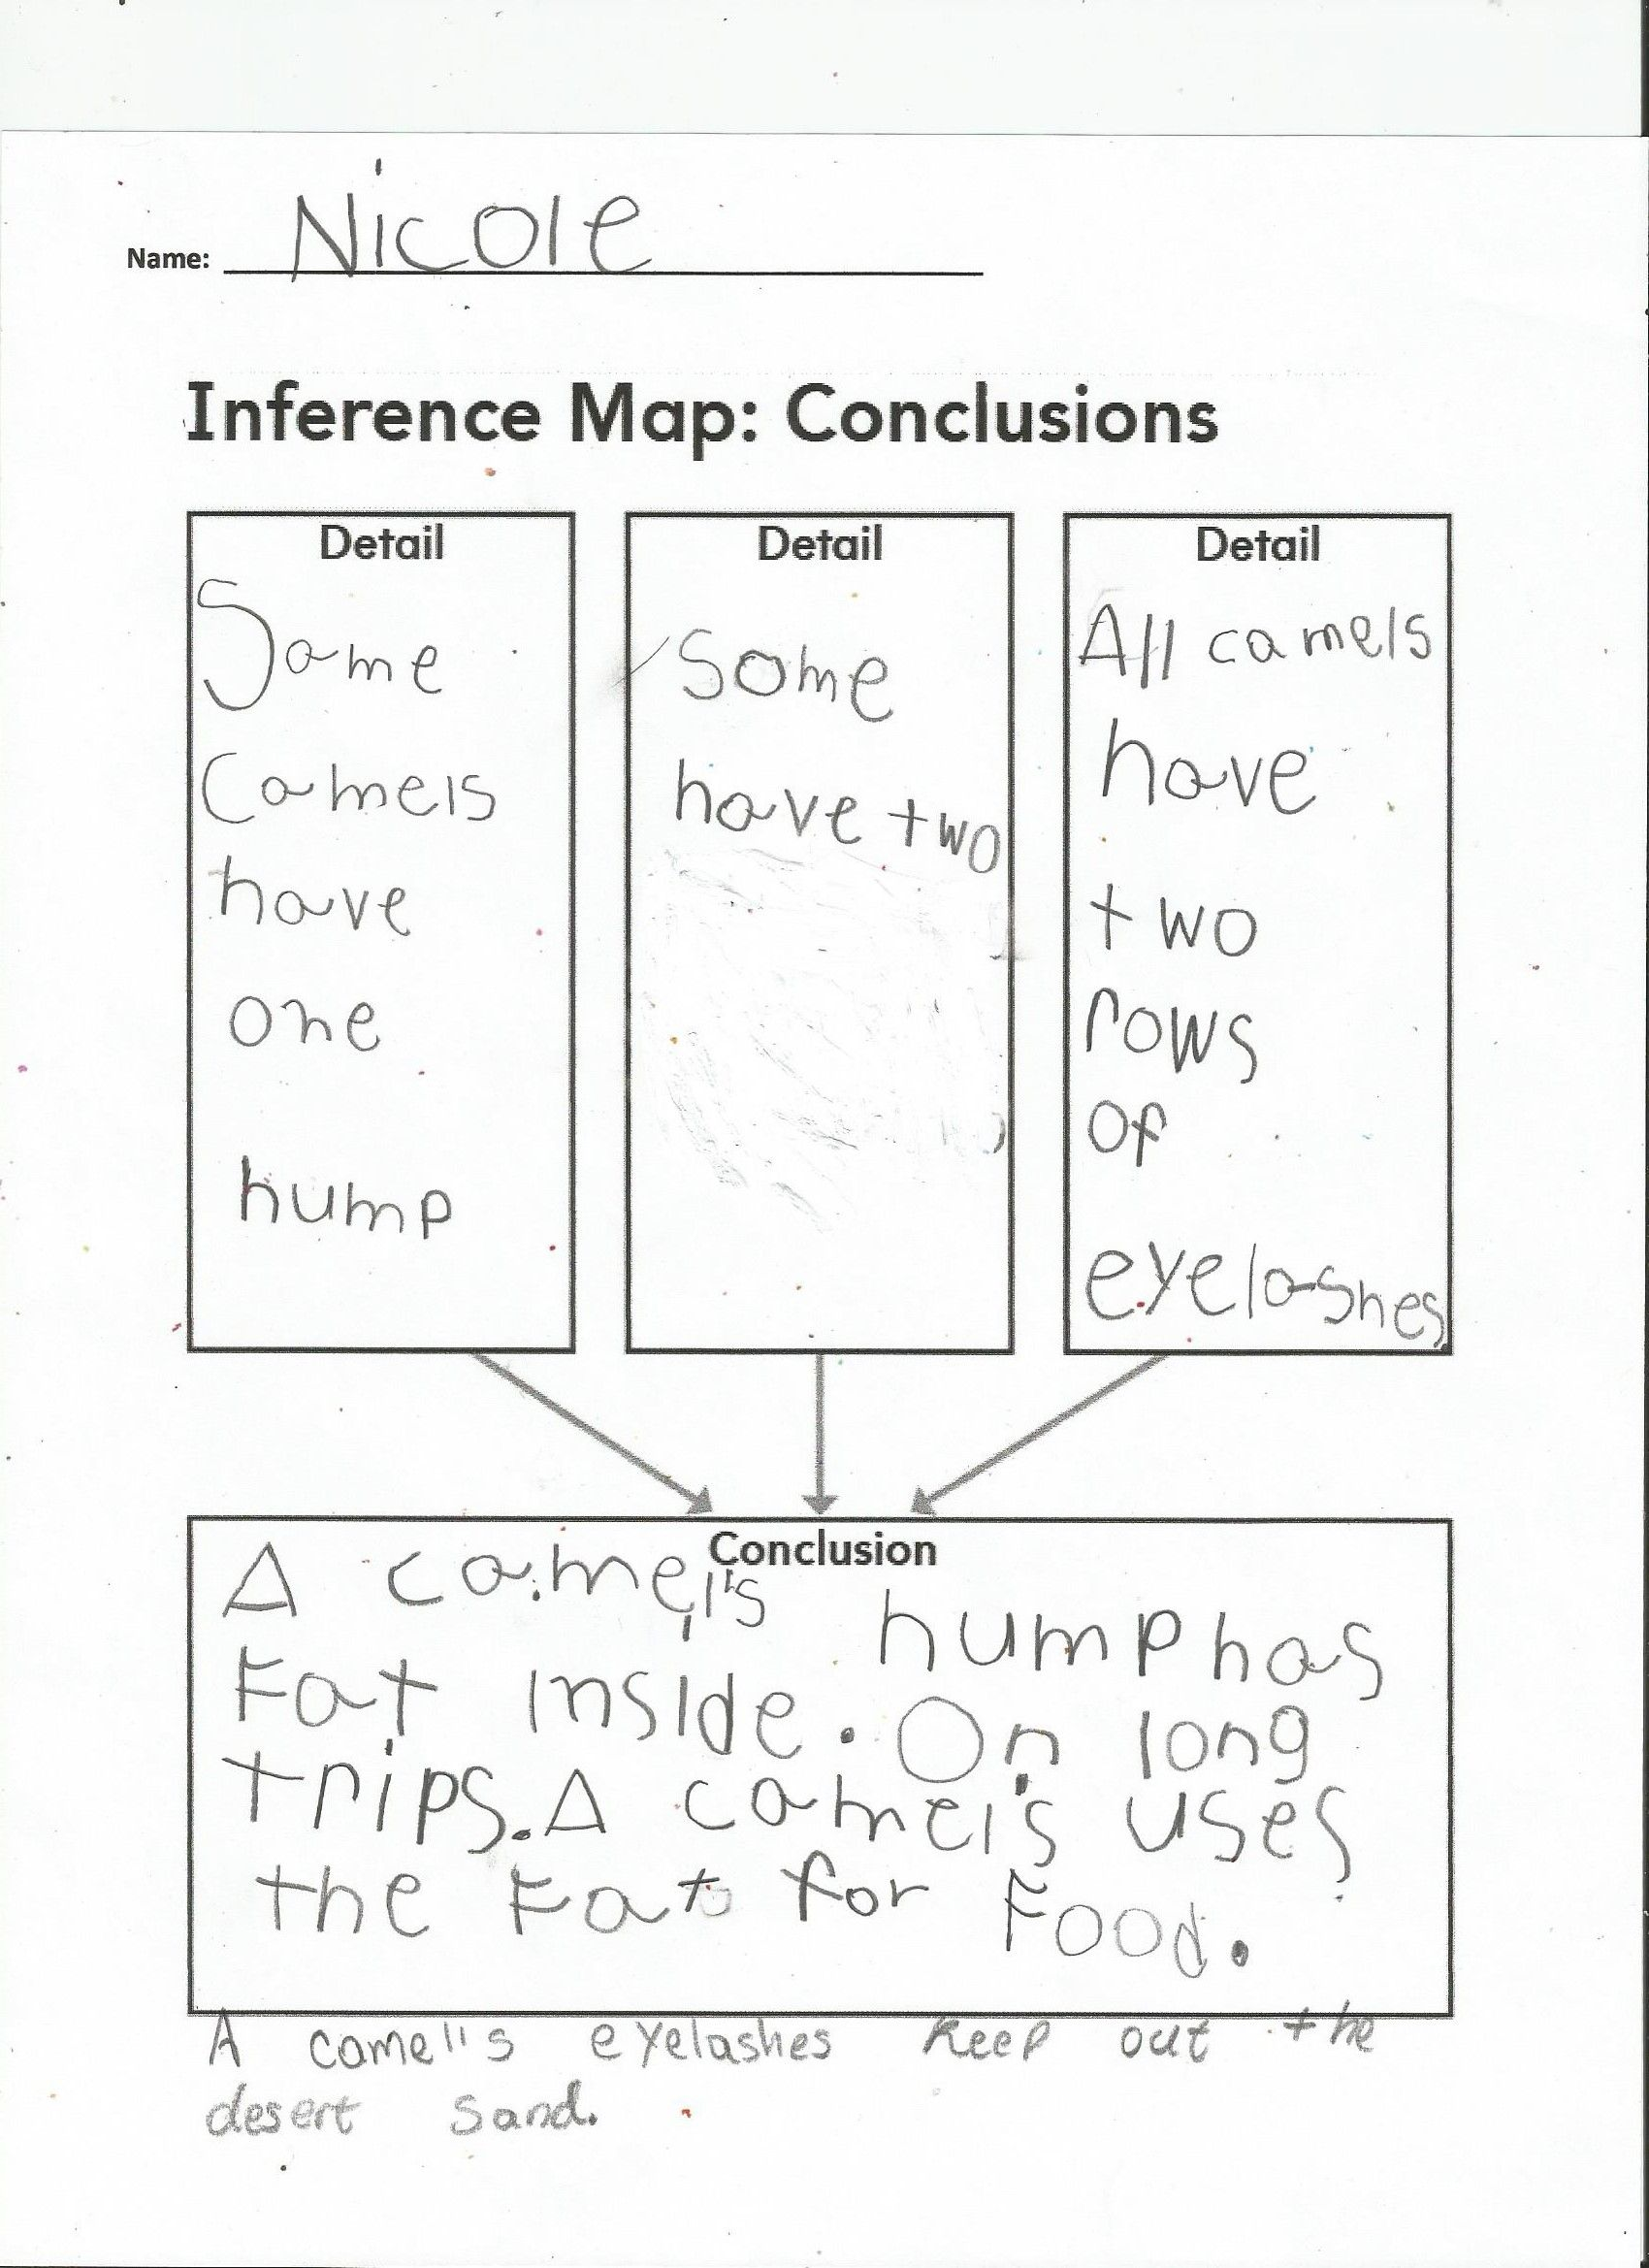 Amazing Animals Inference Map Conclusions